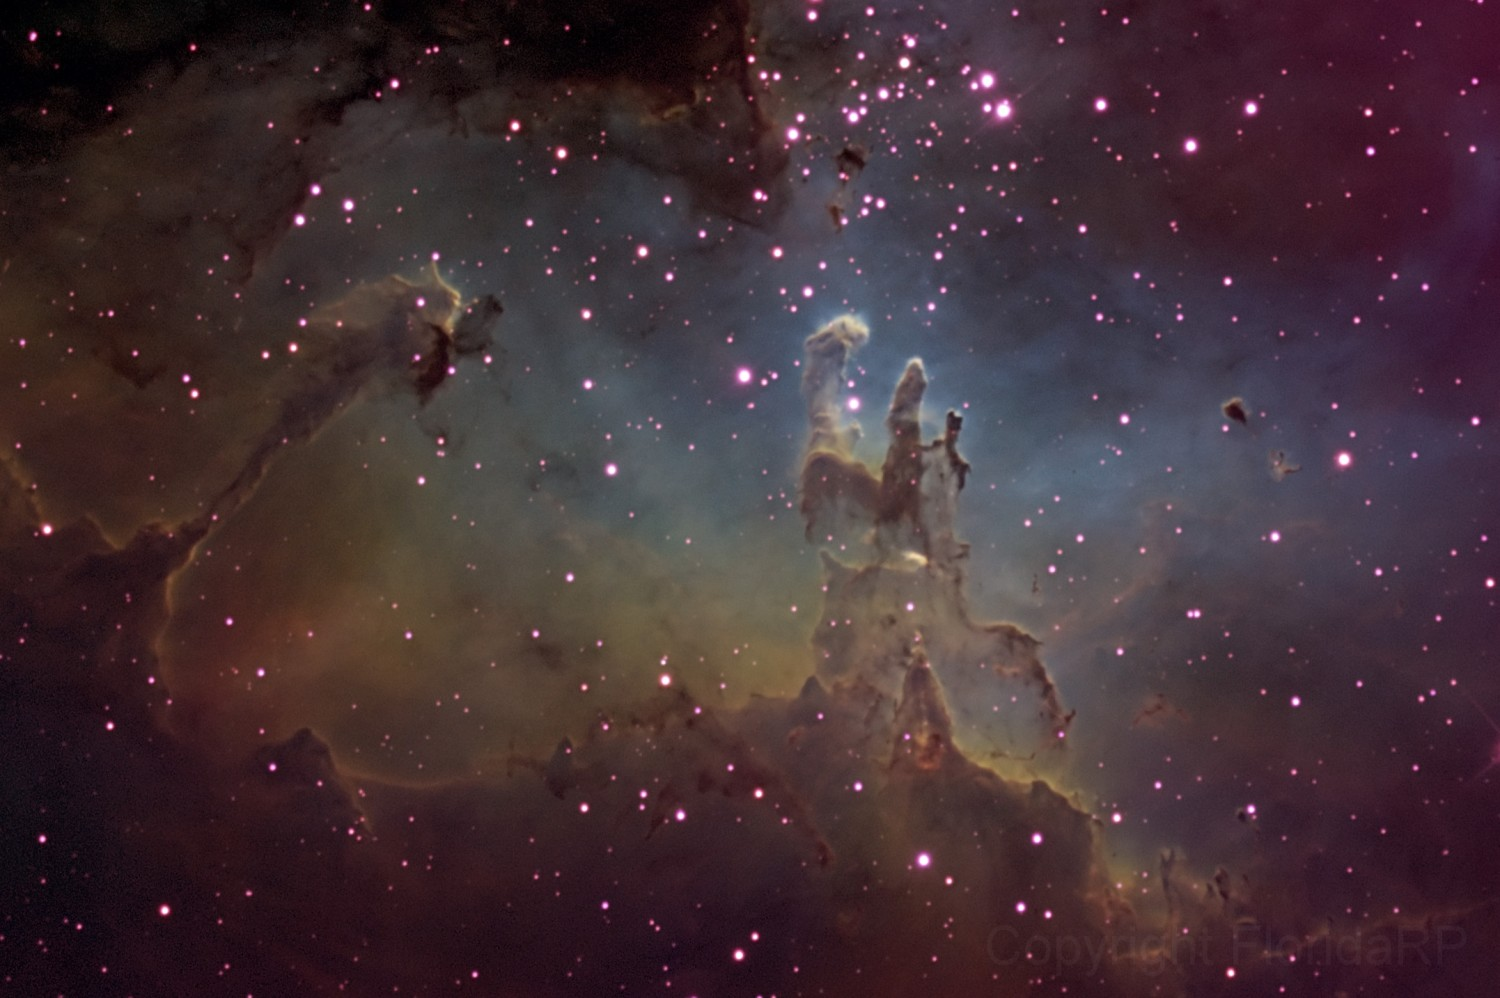 M16 (Pillars of Creation) by Randall Pugh